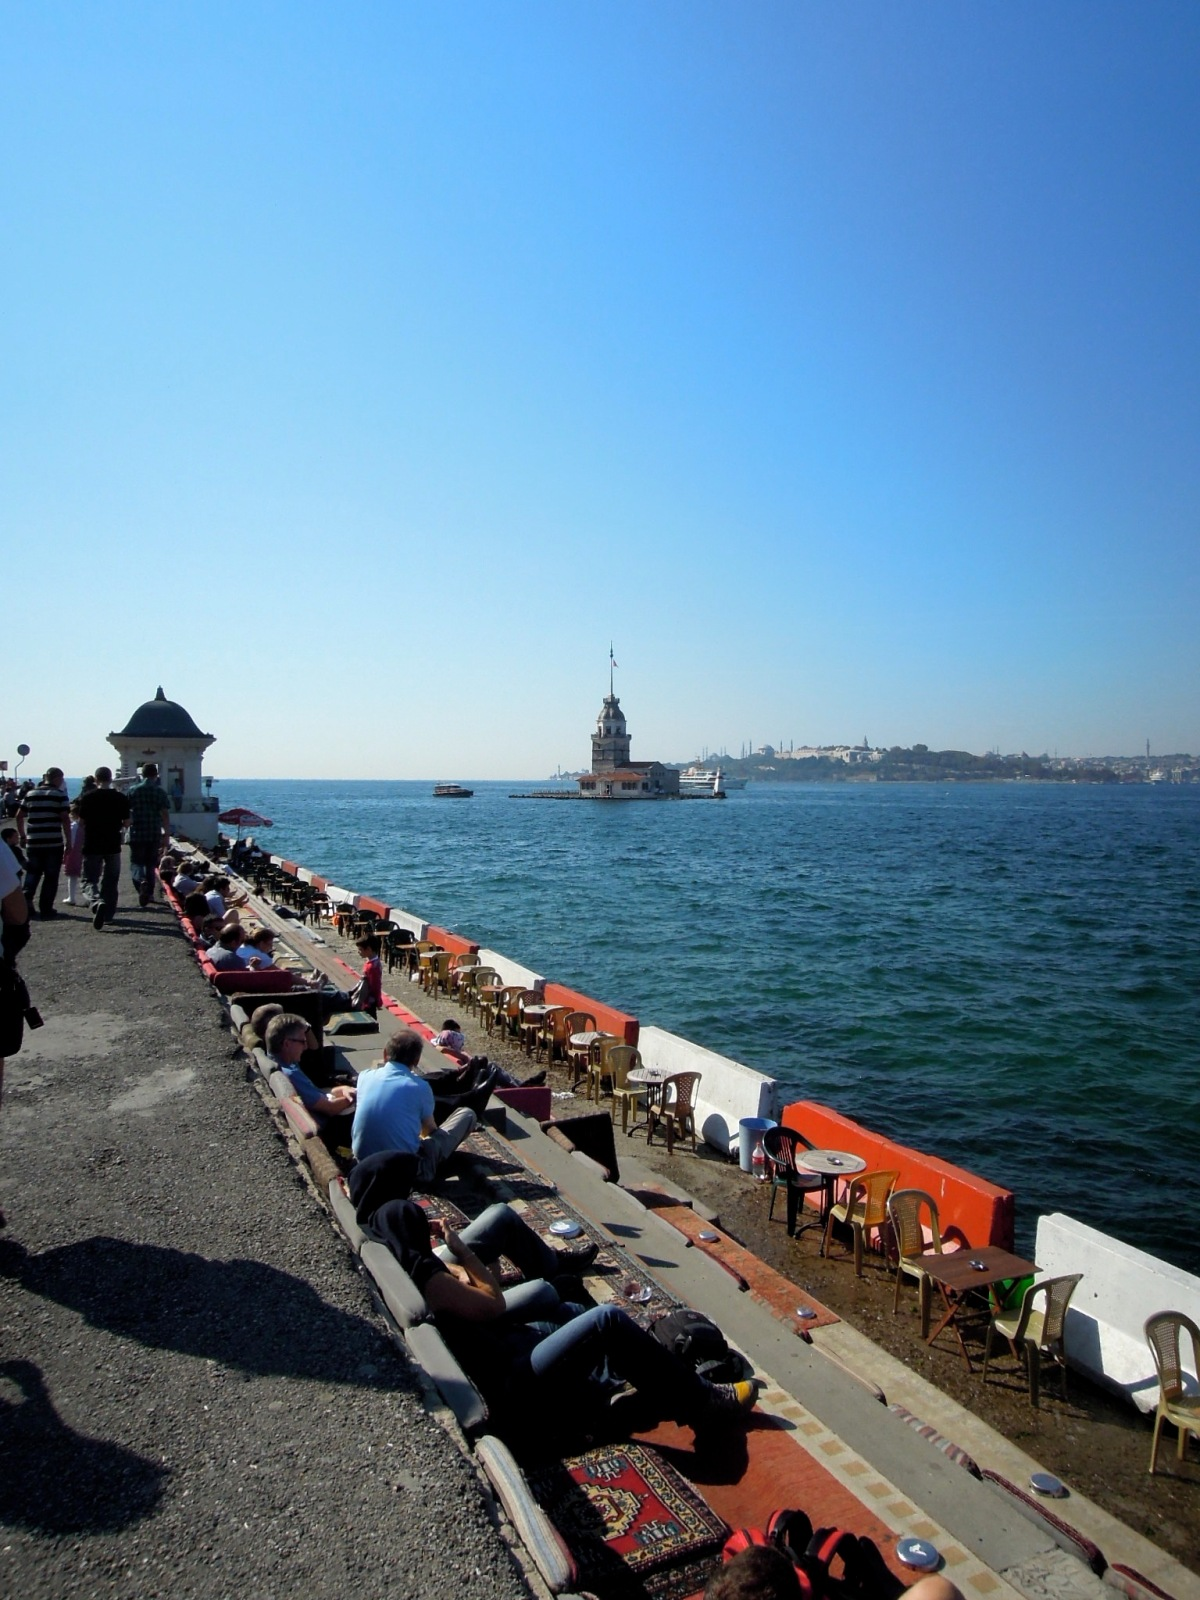 Along the walkway to the Maiden's Tower